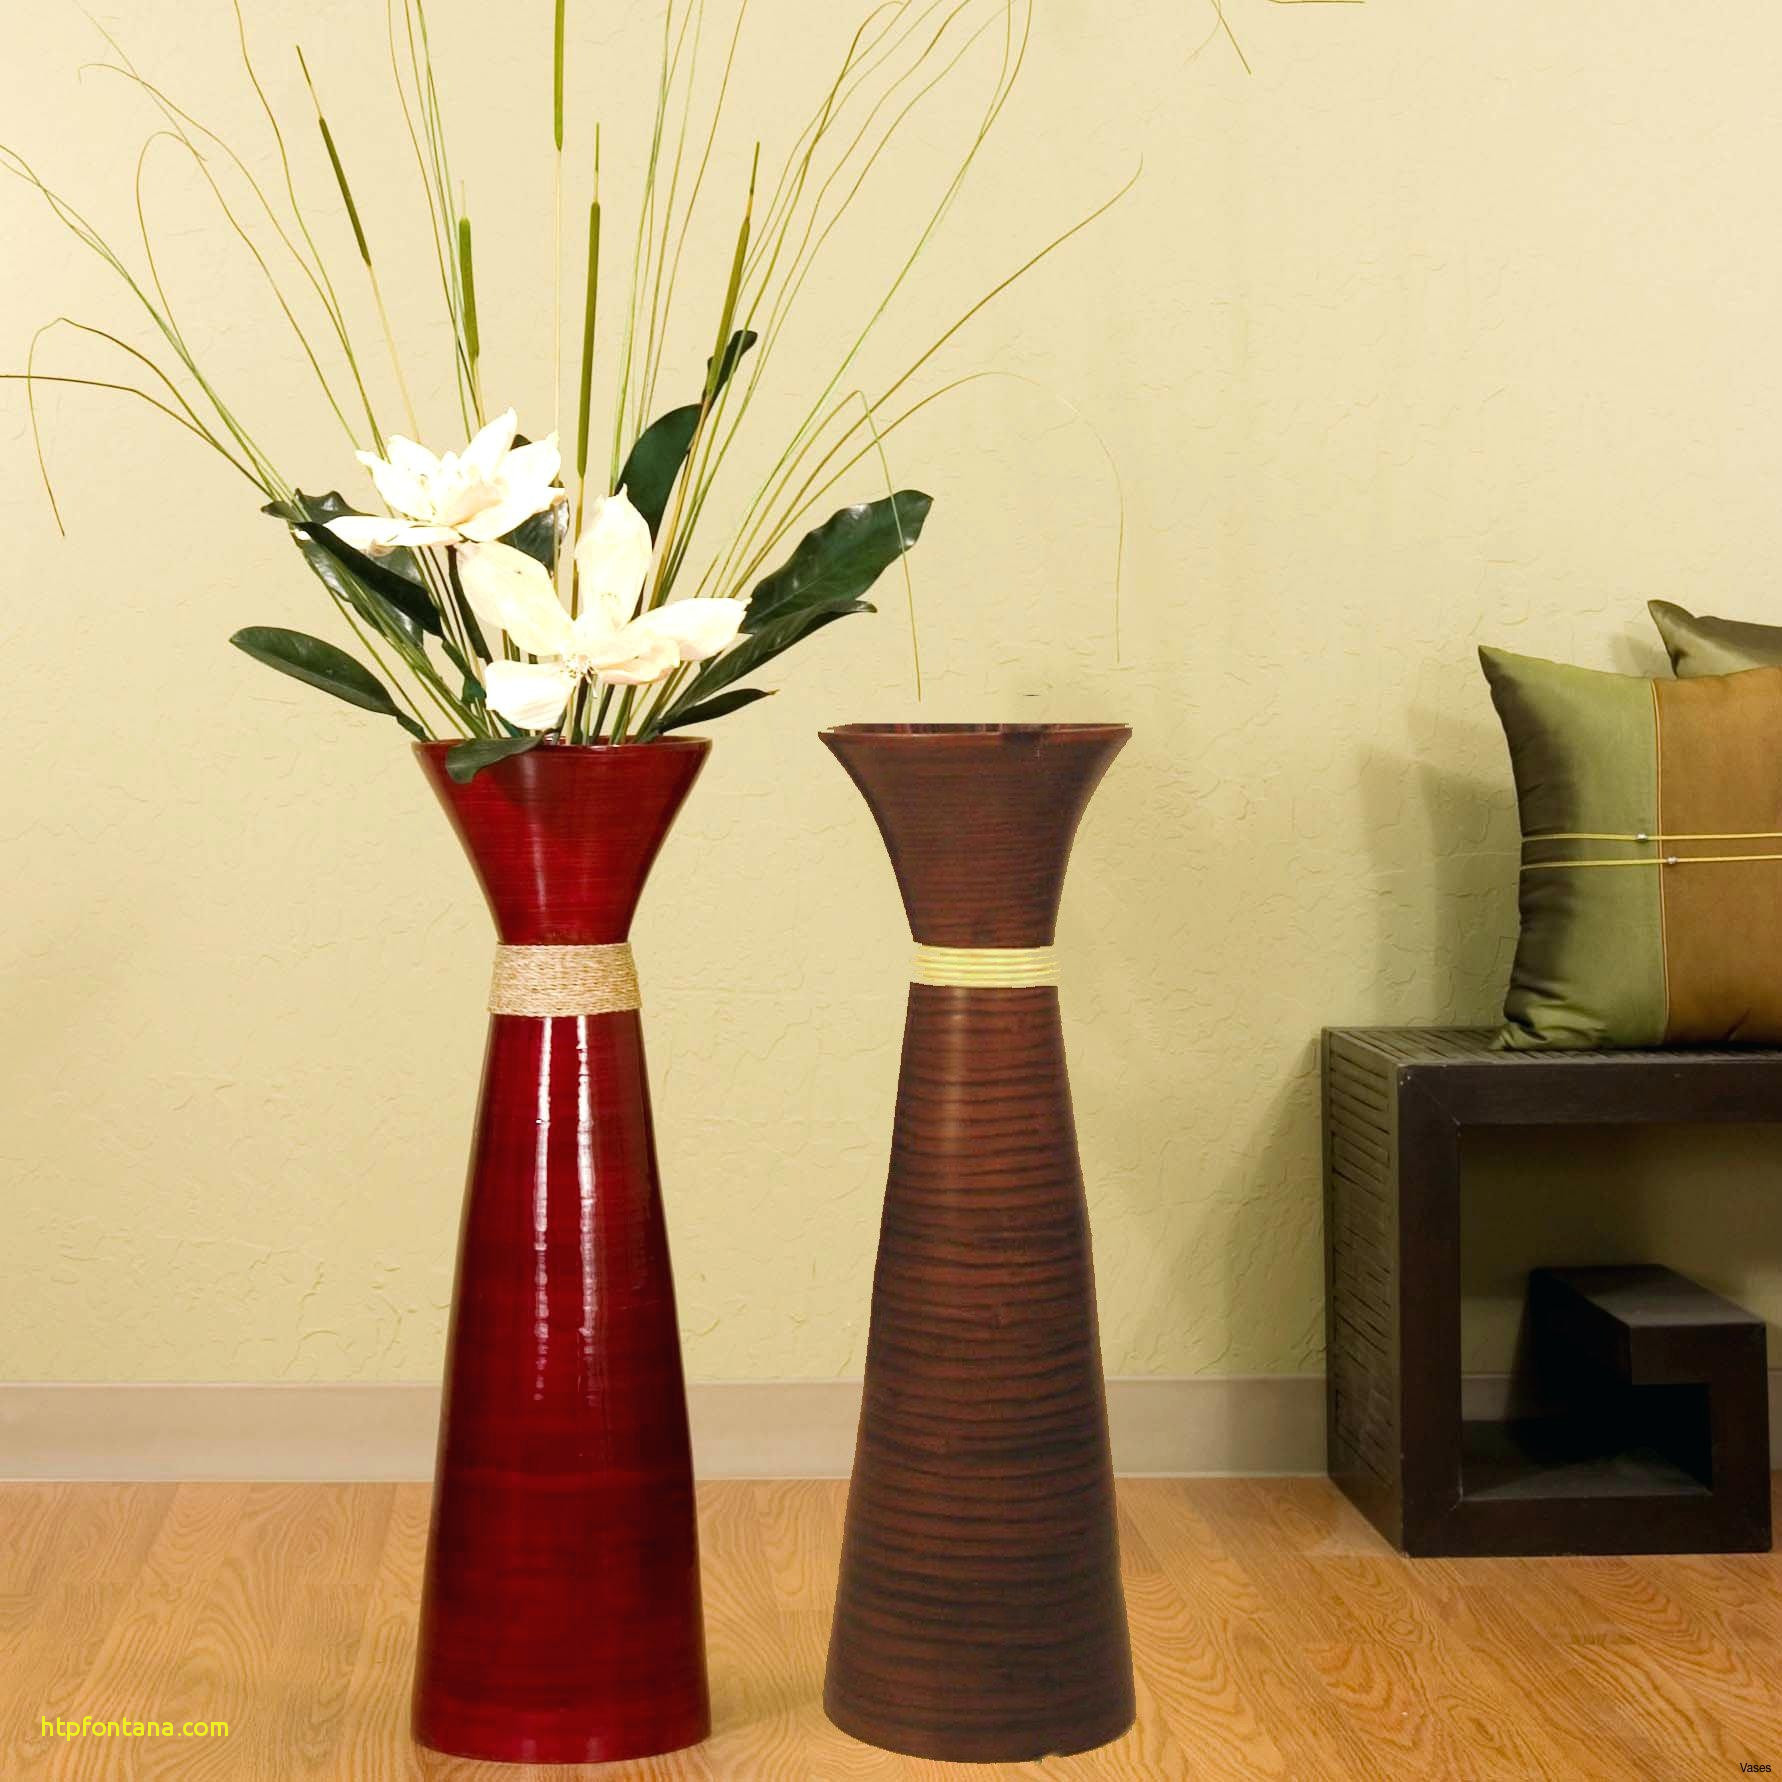 decorative bamboo sticks in vase of vase with sticks inspirational living room decor vases best regarding vase with sticks inspirational living room decor vases best decorative colorful red sticks in a